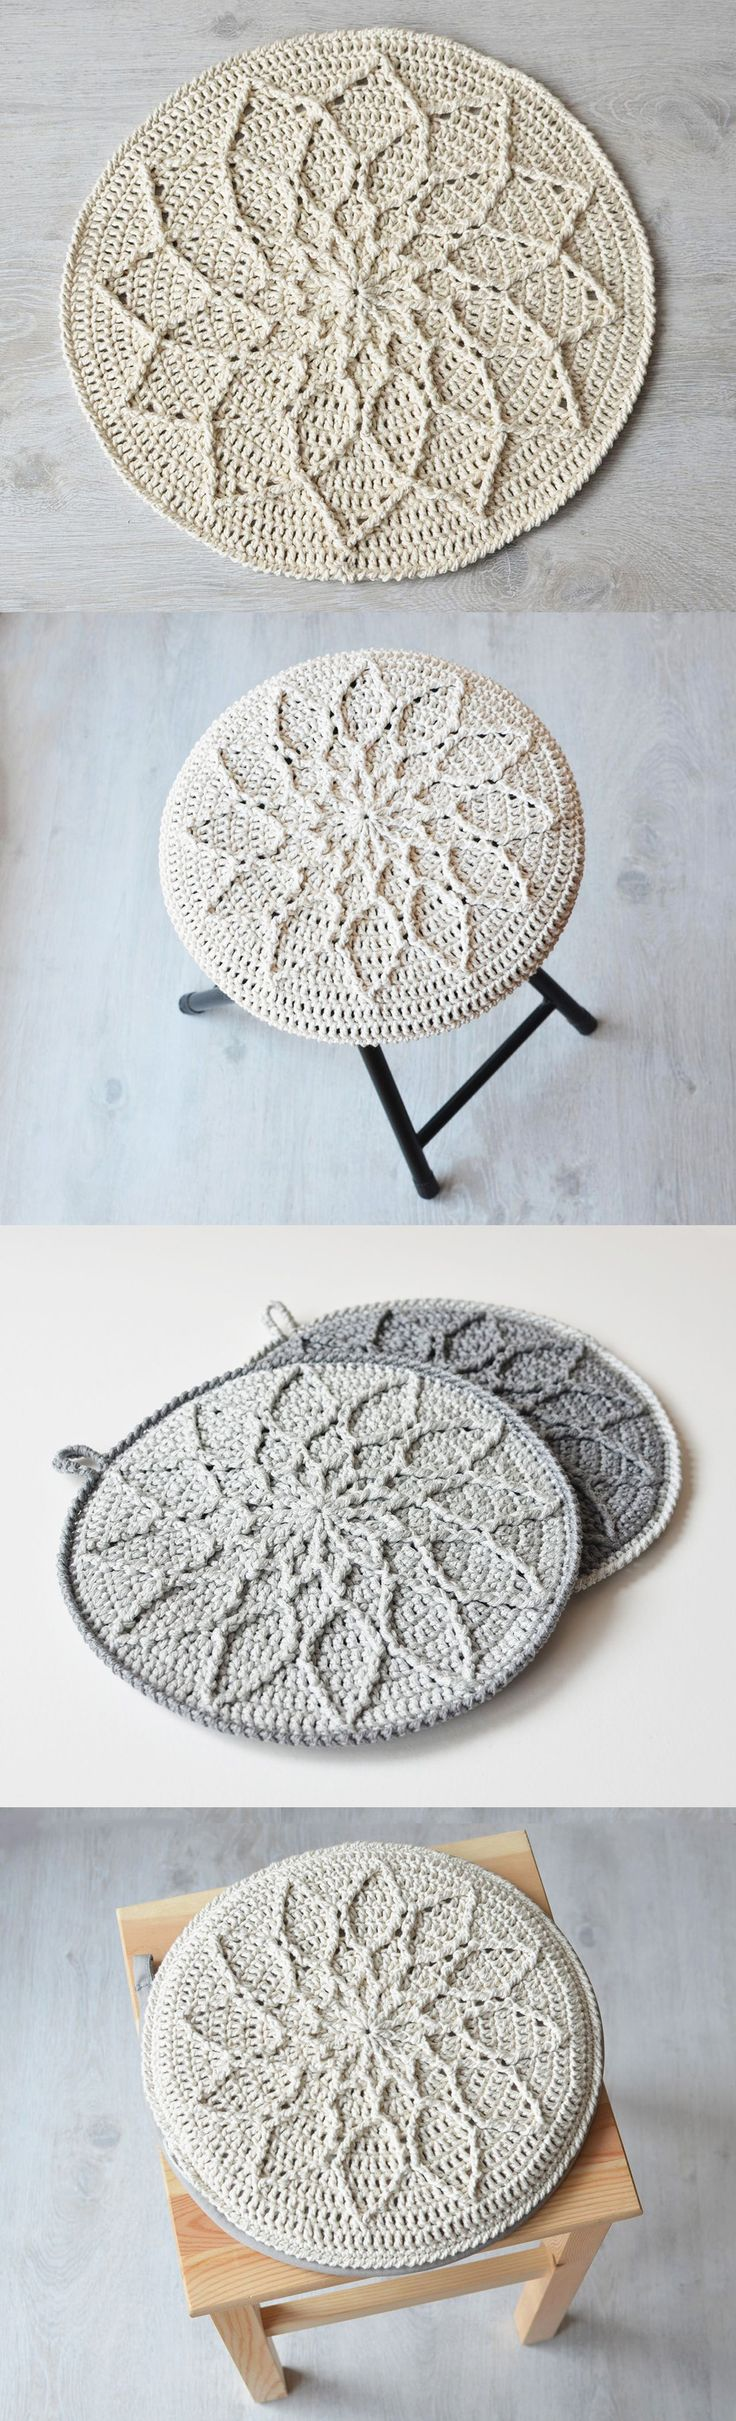 Mimimalist Cabled Mandala. One crochet pattern with many possibilities to use.